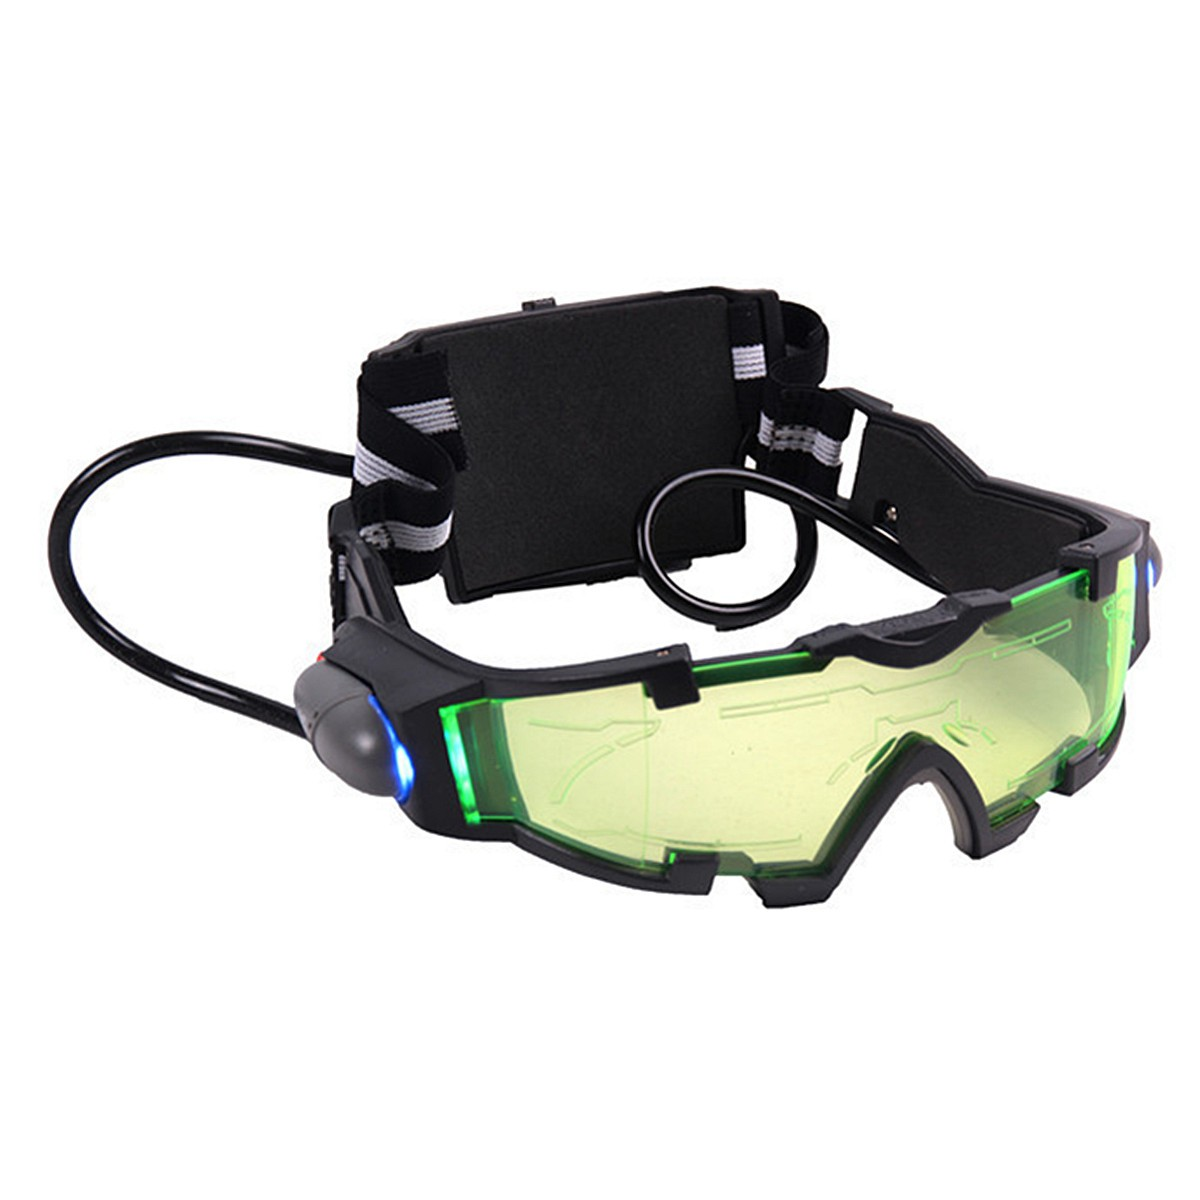 NEW Safurance Adjustable ElasticMilitary Night Vision Goggles Glasses Security Eyeshield Workplace Safety Eye Protection adjustable windproof elastic band night vision goggles glass children protection glasses green lens eye shield with led